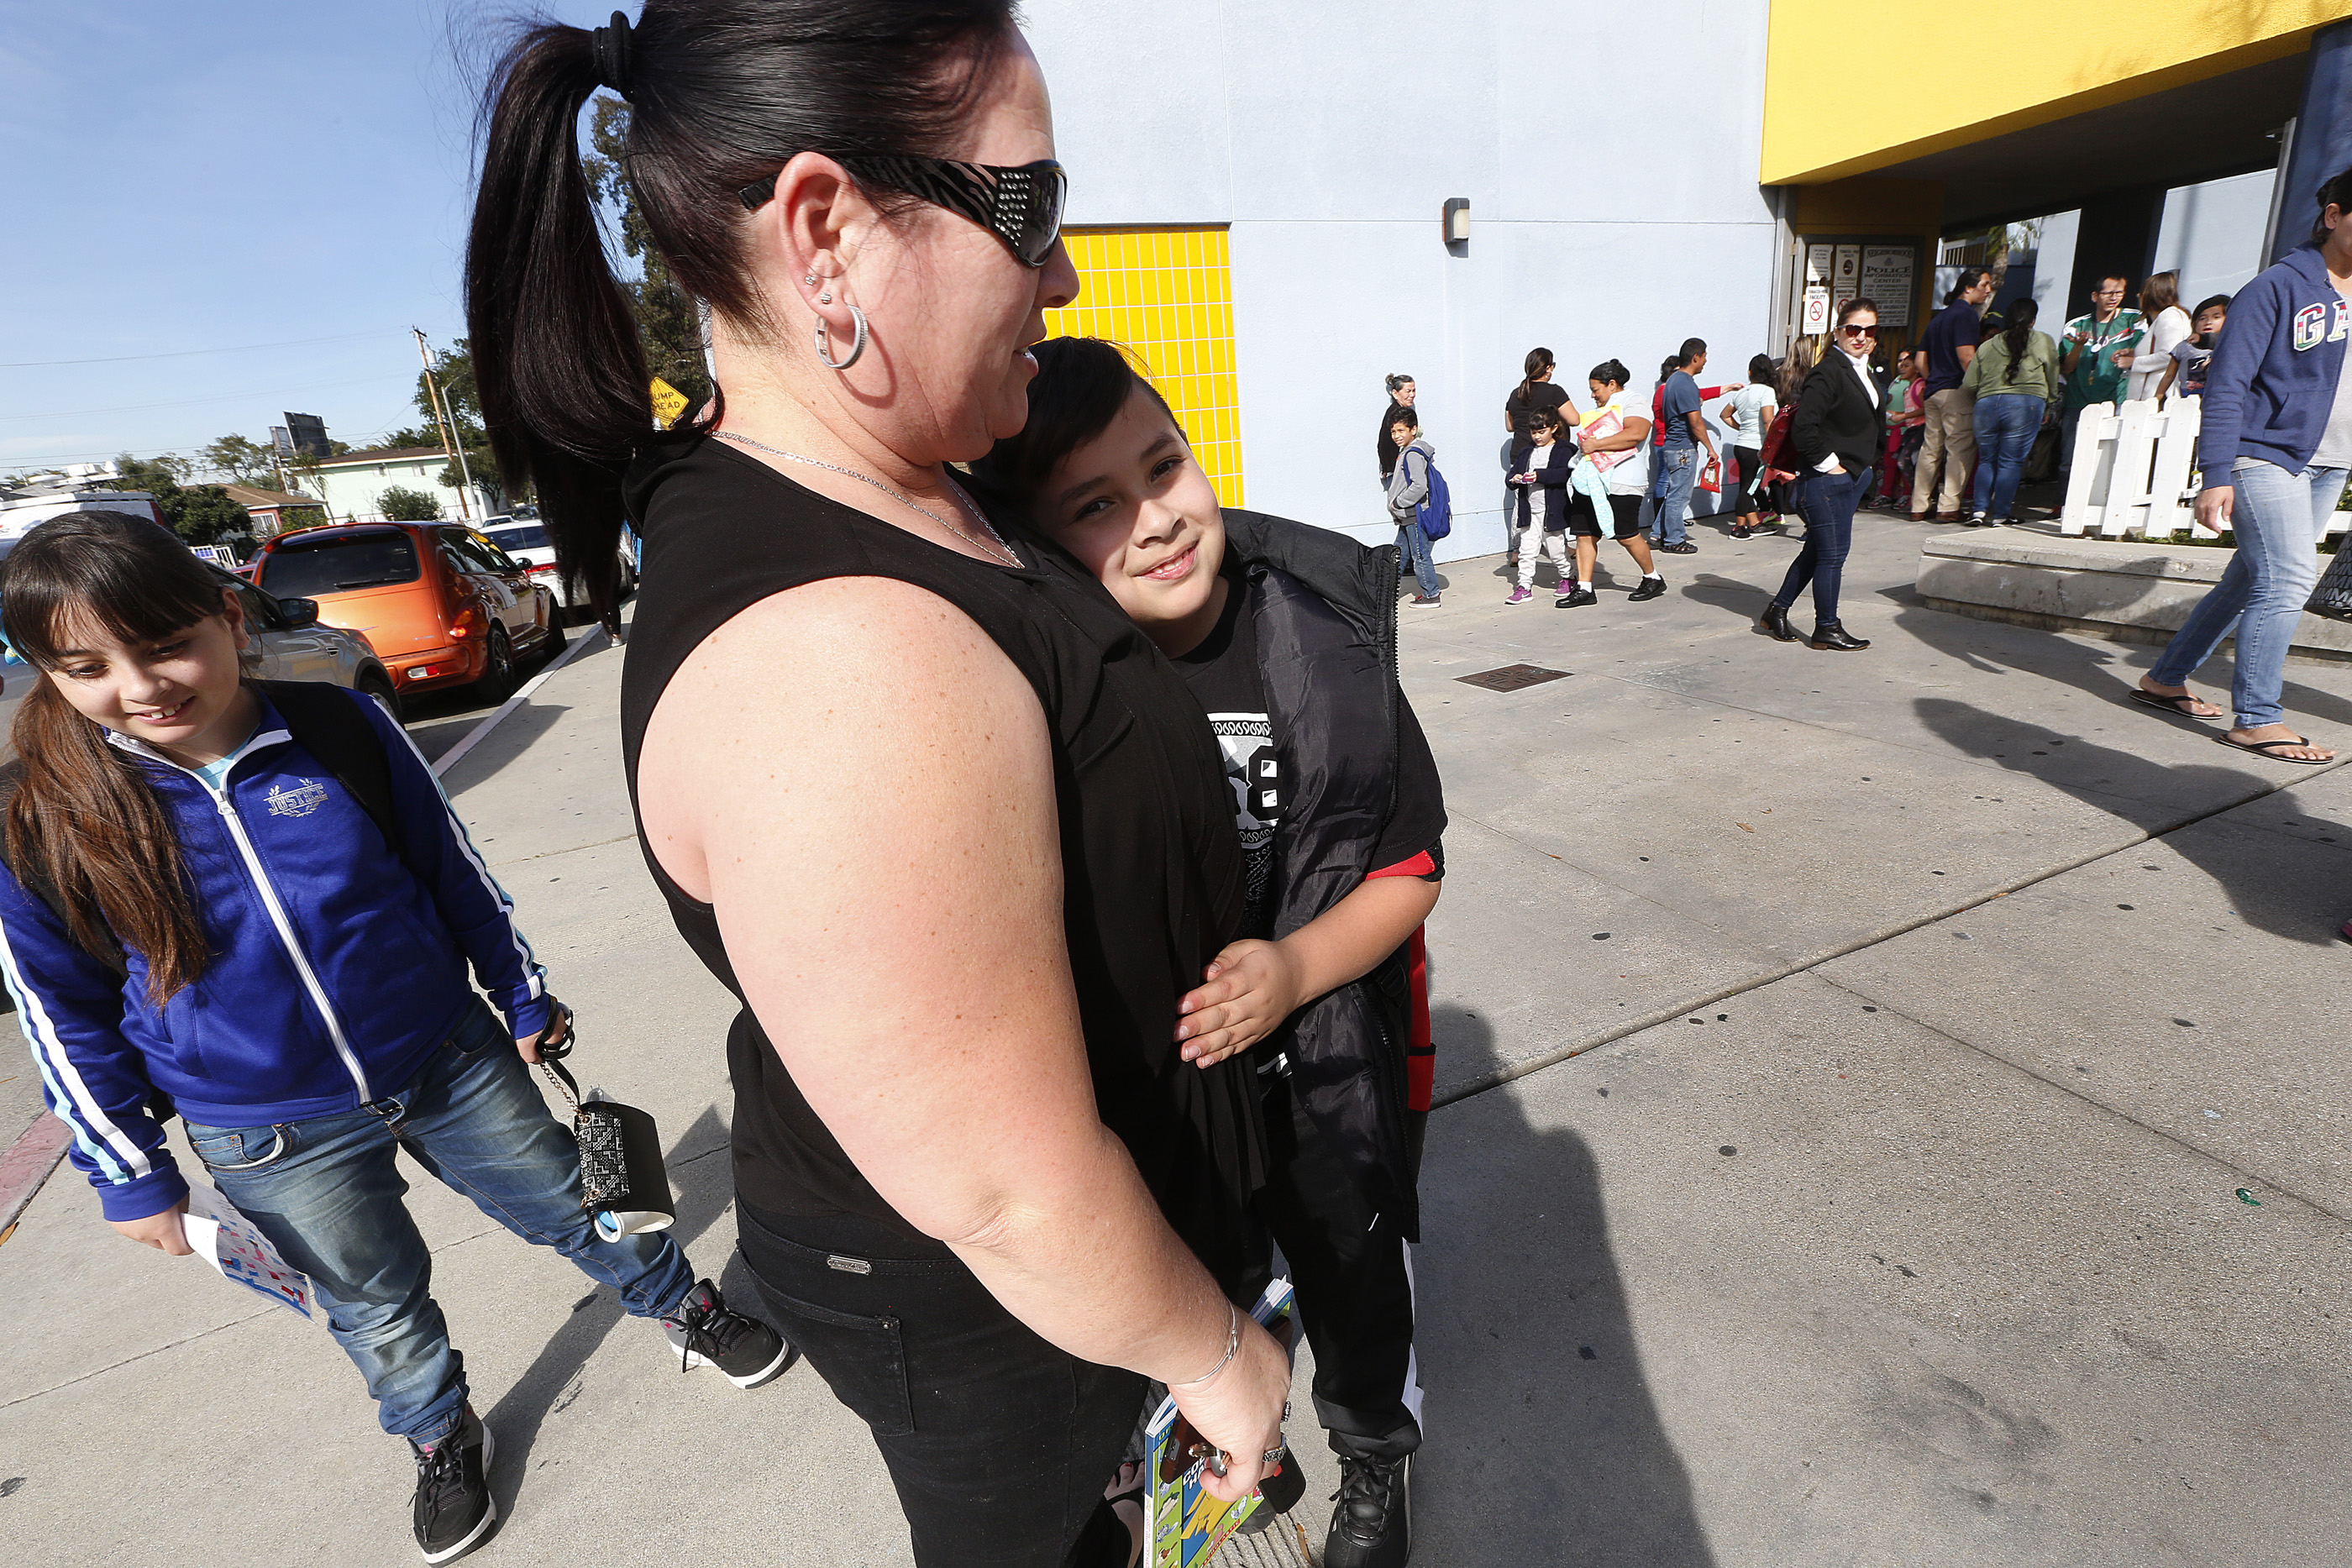 02/13/17 /LOS ANGELES/Marielena Galaviz picks up her son Anthony Hernandez,9, from Montana Avenue Elementary School in South Gate. According to school officials, a third-grade teacher atÊMontana Avenue Elementary died of bacterialÊmeningitis.ÊÊ Health officials have not released the name of the teacher, but school and health officials met with parents on campus to address their concerns. (Photo Aurelia Ventura/La Opinion)